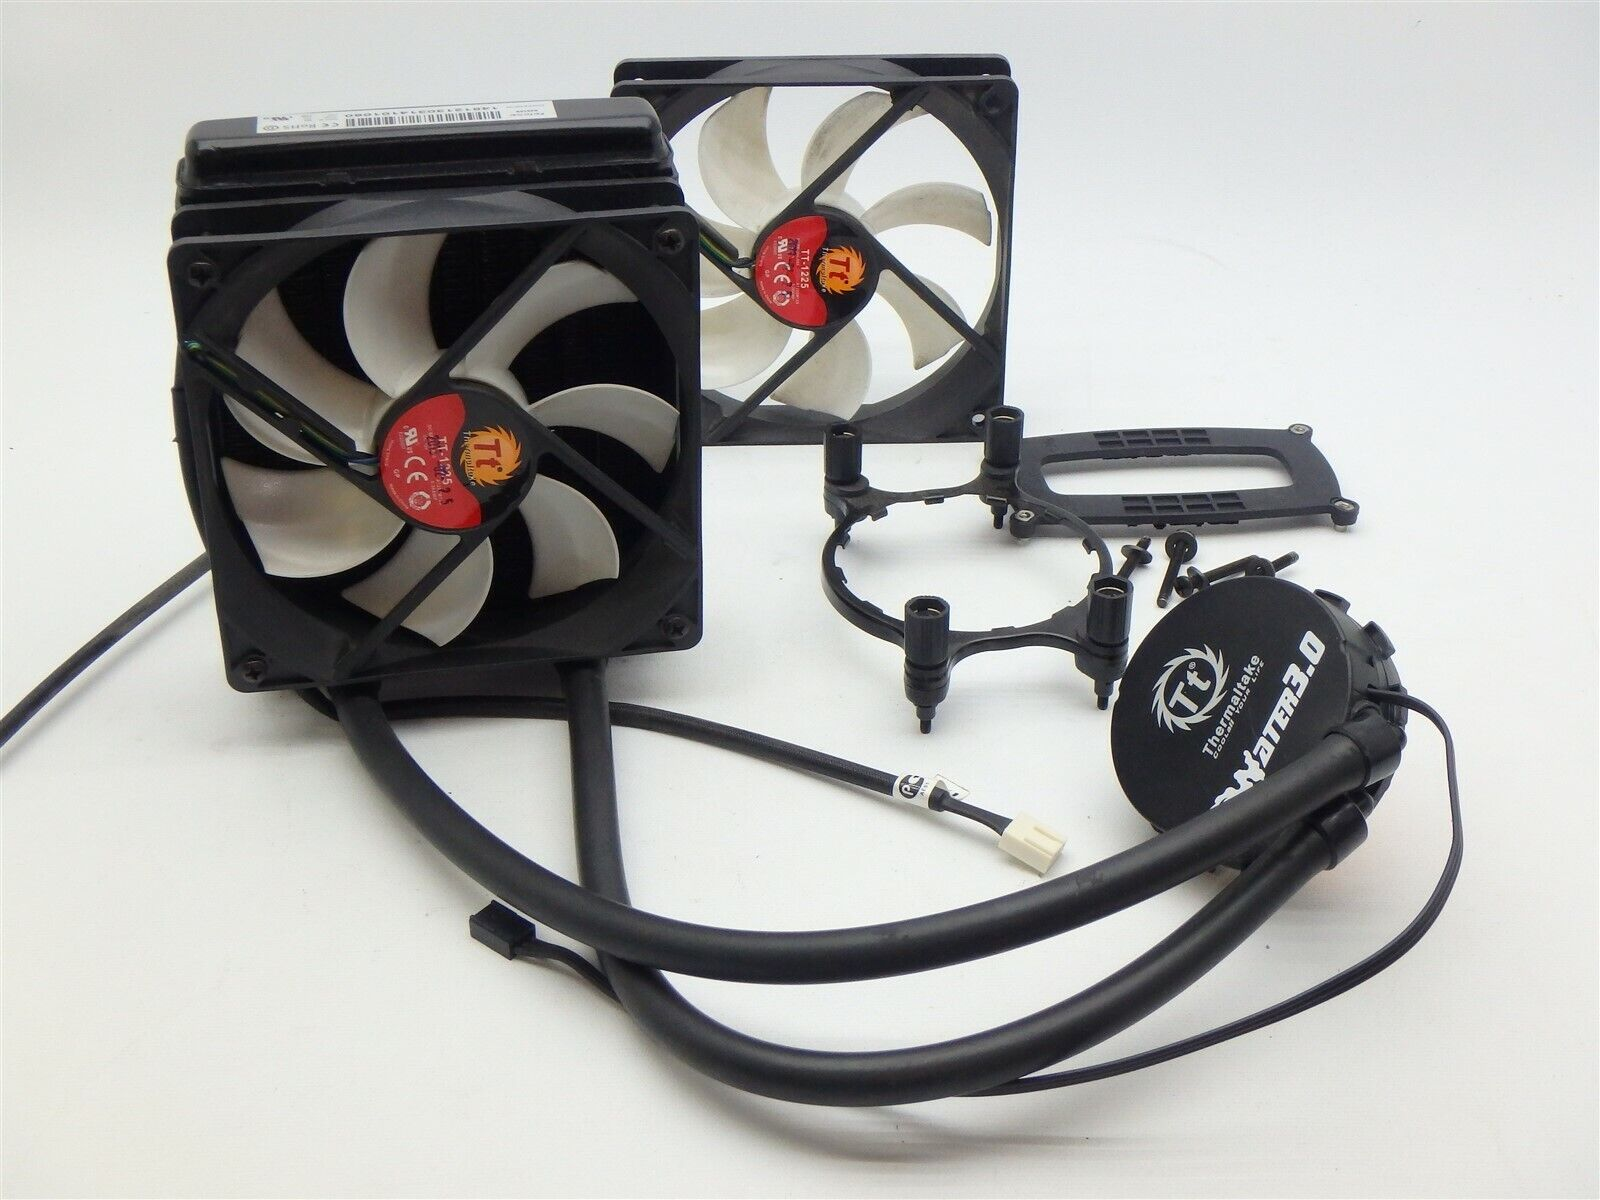 Thermaltake Water 3.0 CPU Cooler AM3 with fans, radiator and